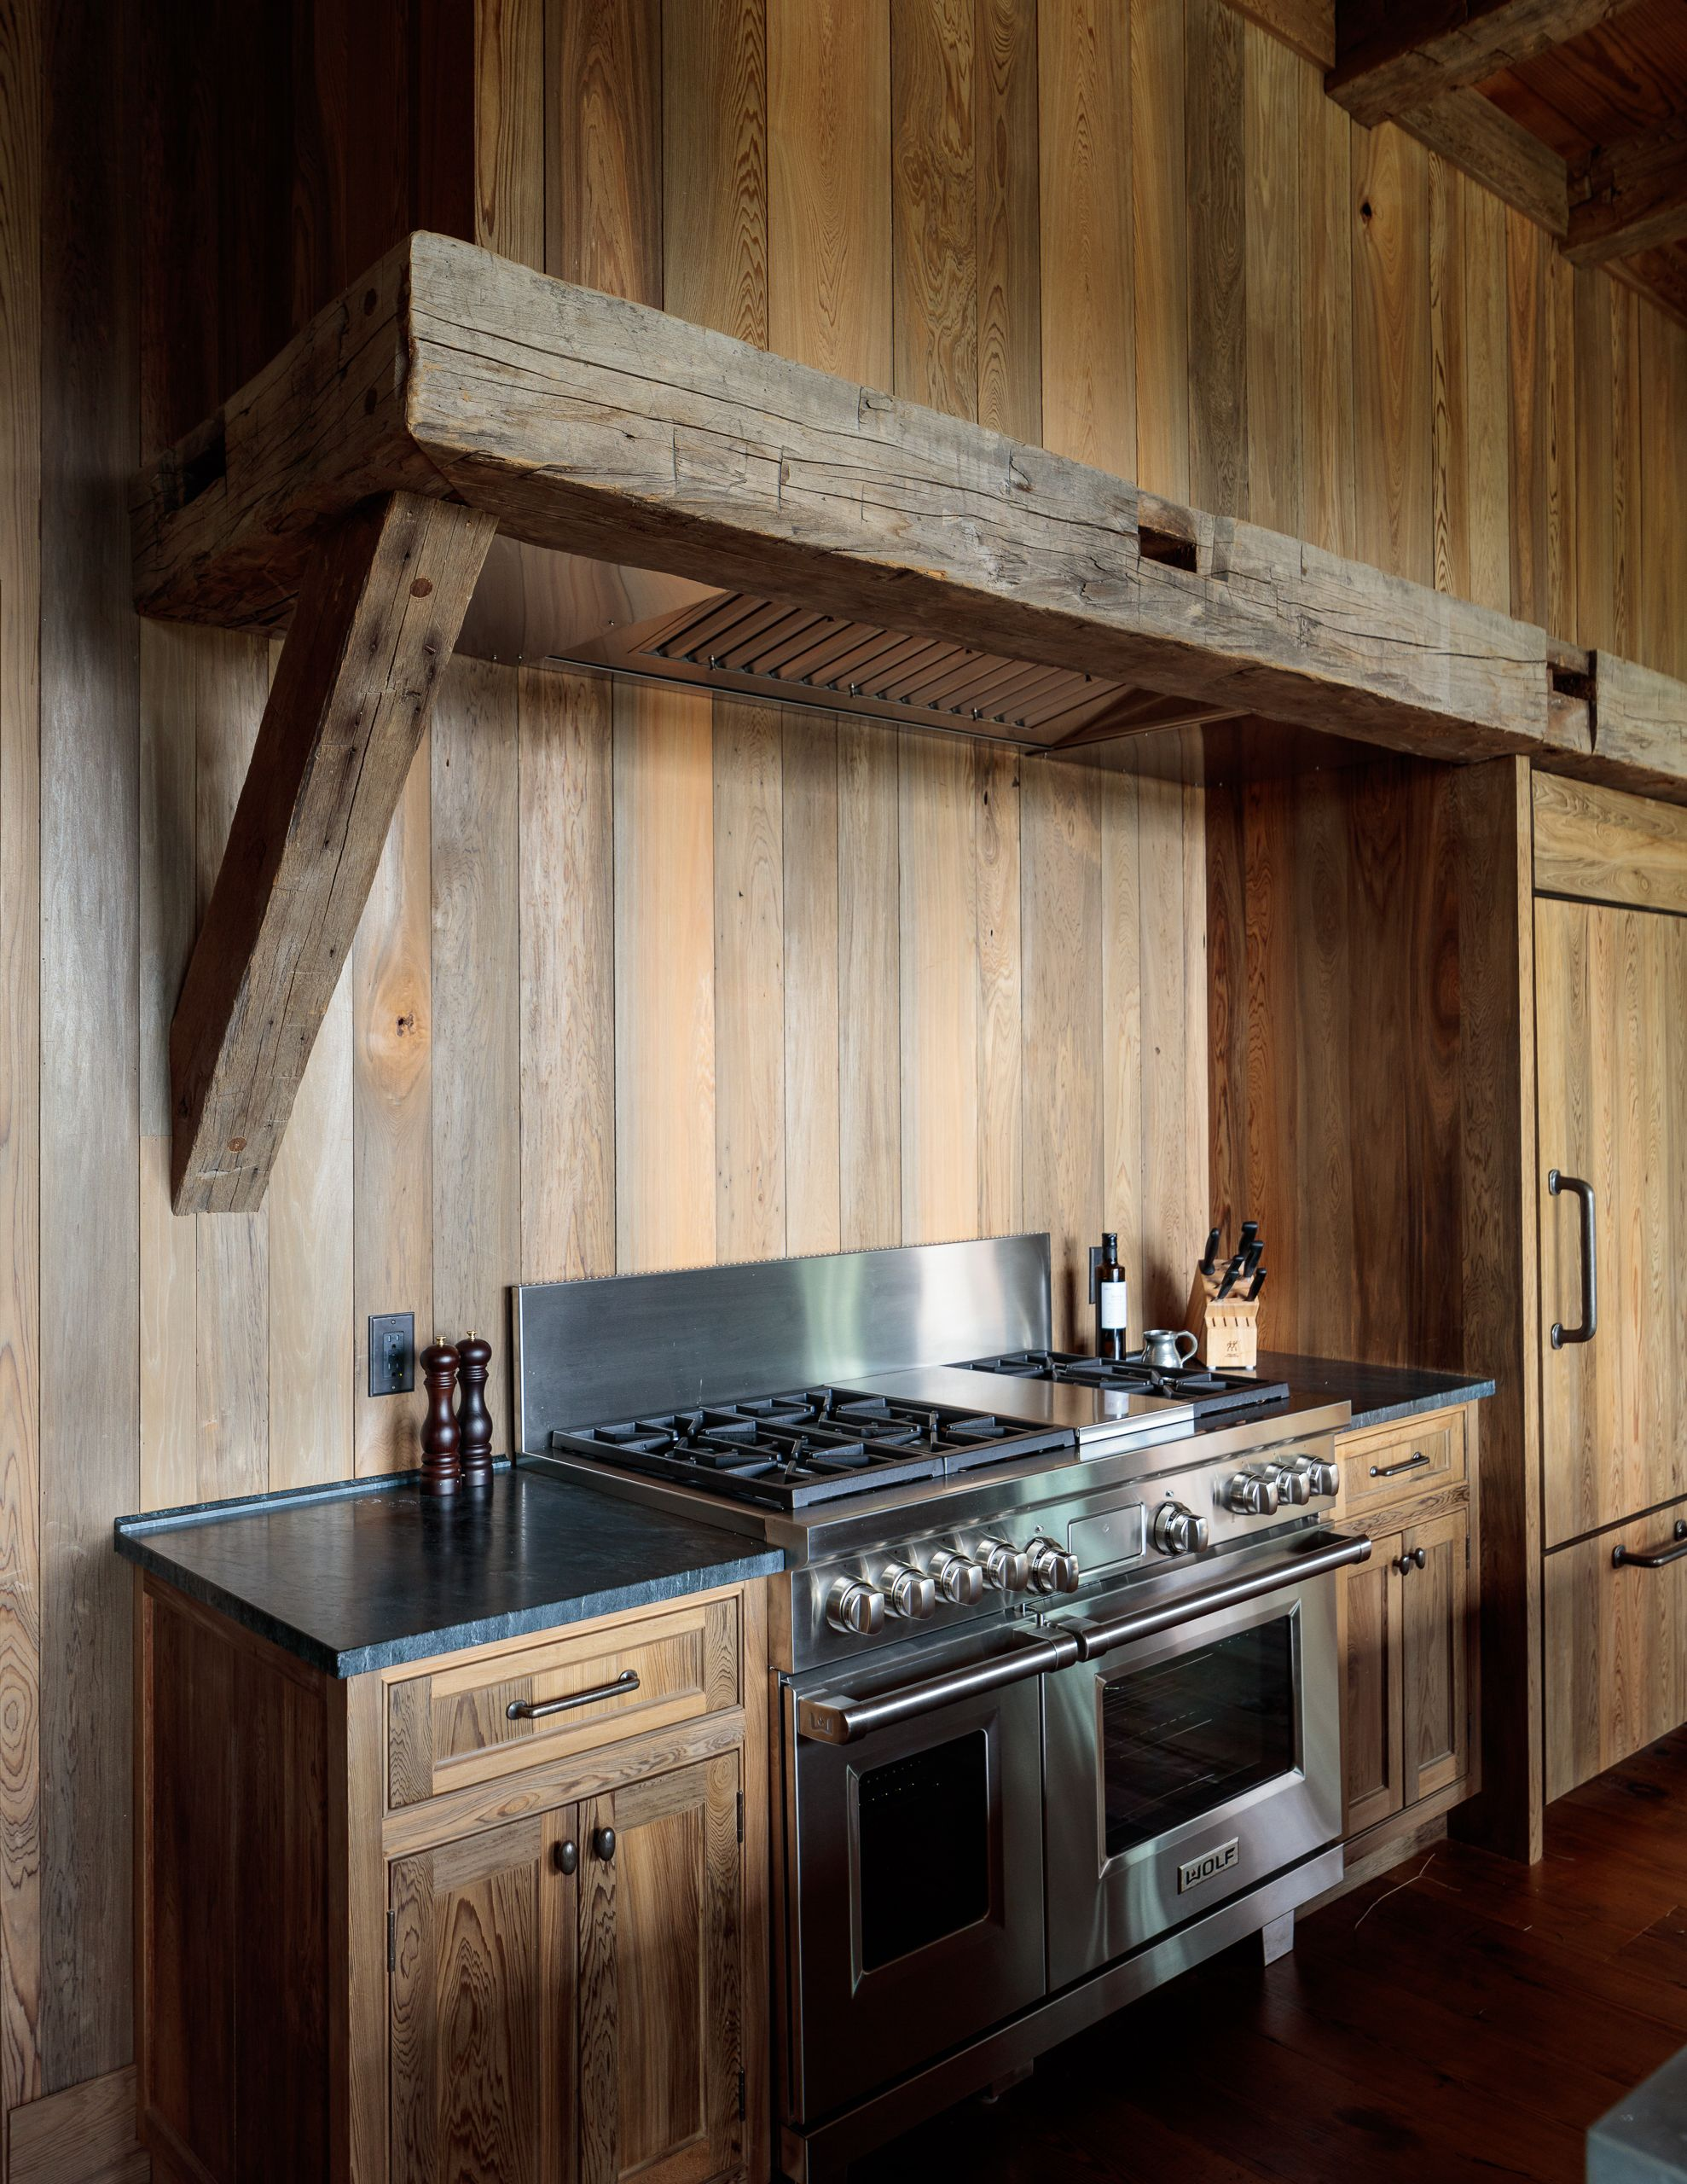 River Recovered Cypress Kitchen Cabinets Walls Refrigerator Done In Green Blue Brown Cypress Boards With Hand Vintage House Hand Hewn Beams Louisiana Homes